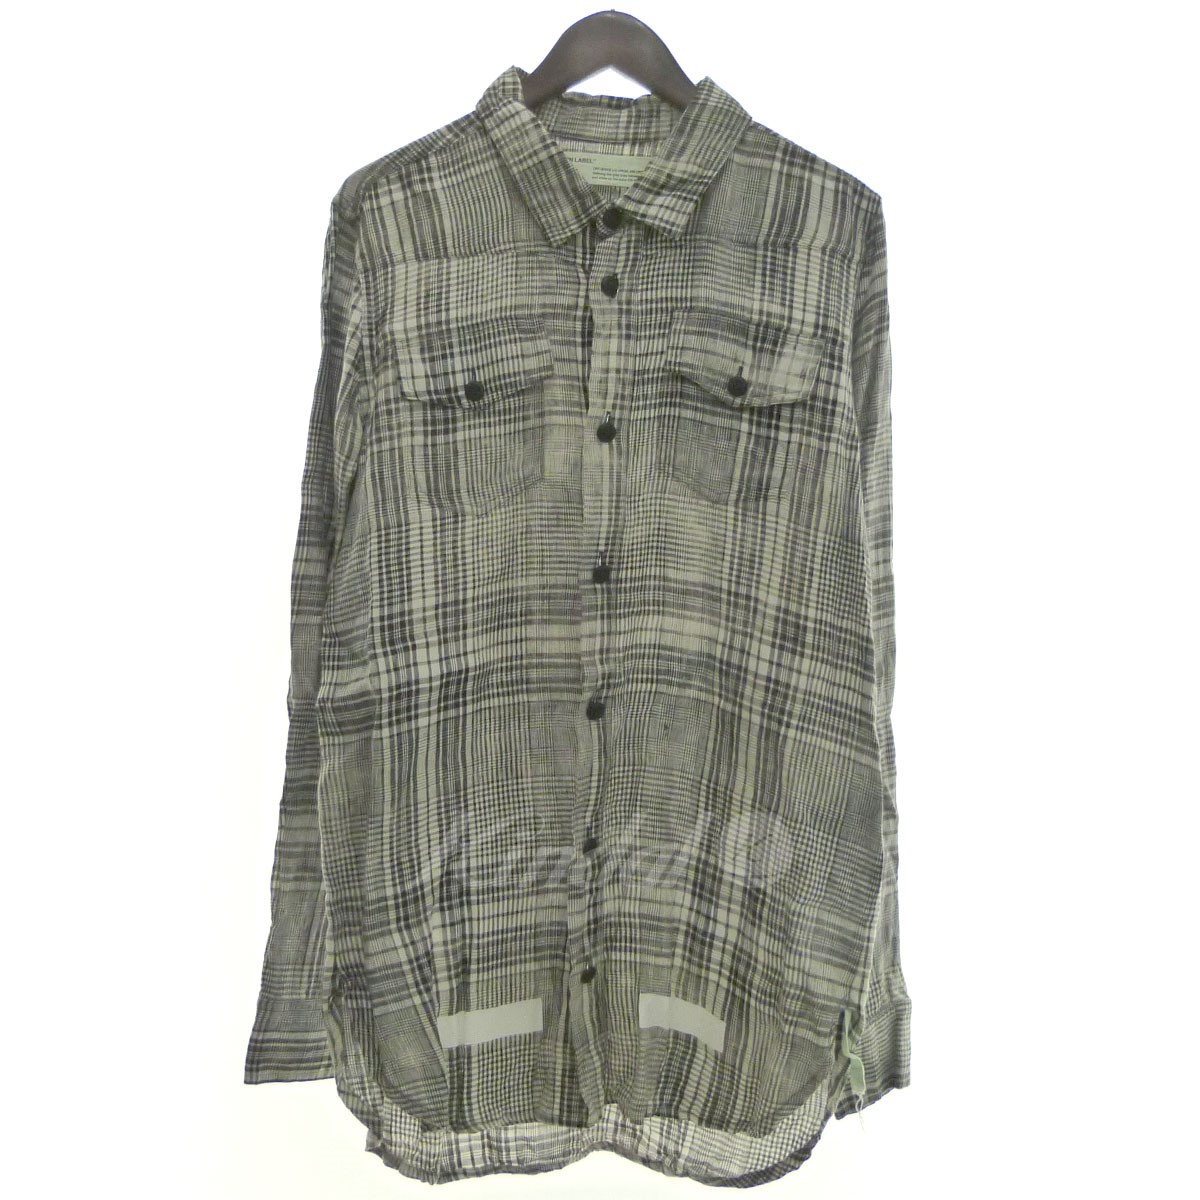 【中古】OFF WHITE 「Mirror Mirro-print checked linen shirt」チェックリネンシャツ 【送料無料】 【146449】 【KIND1550】